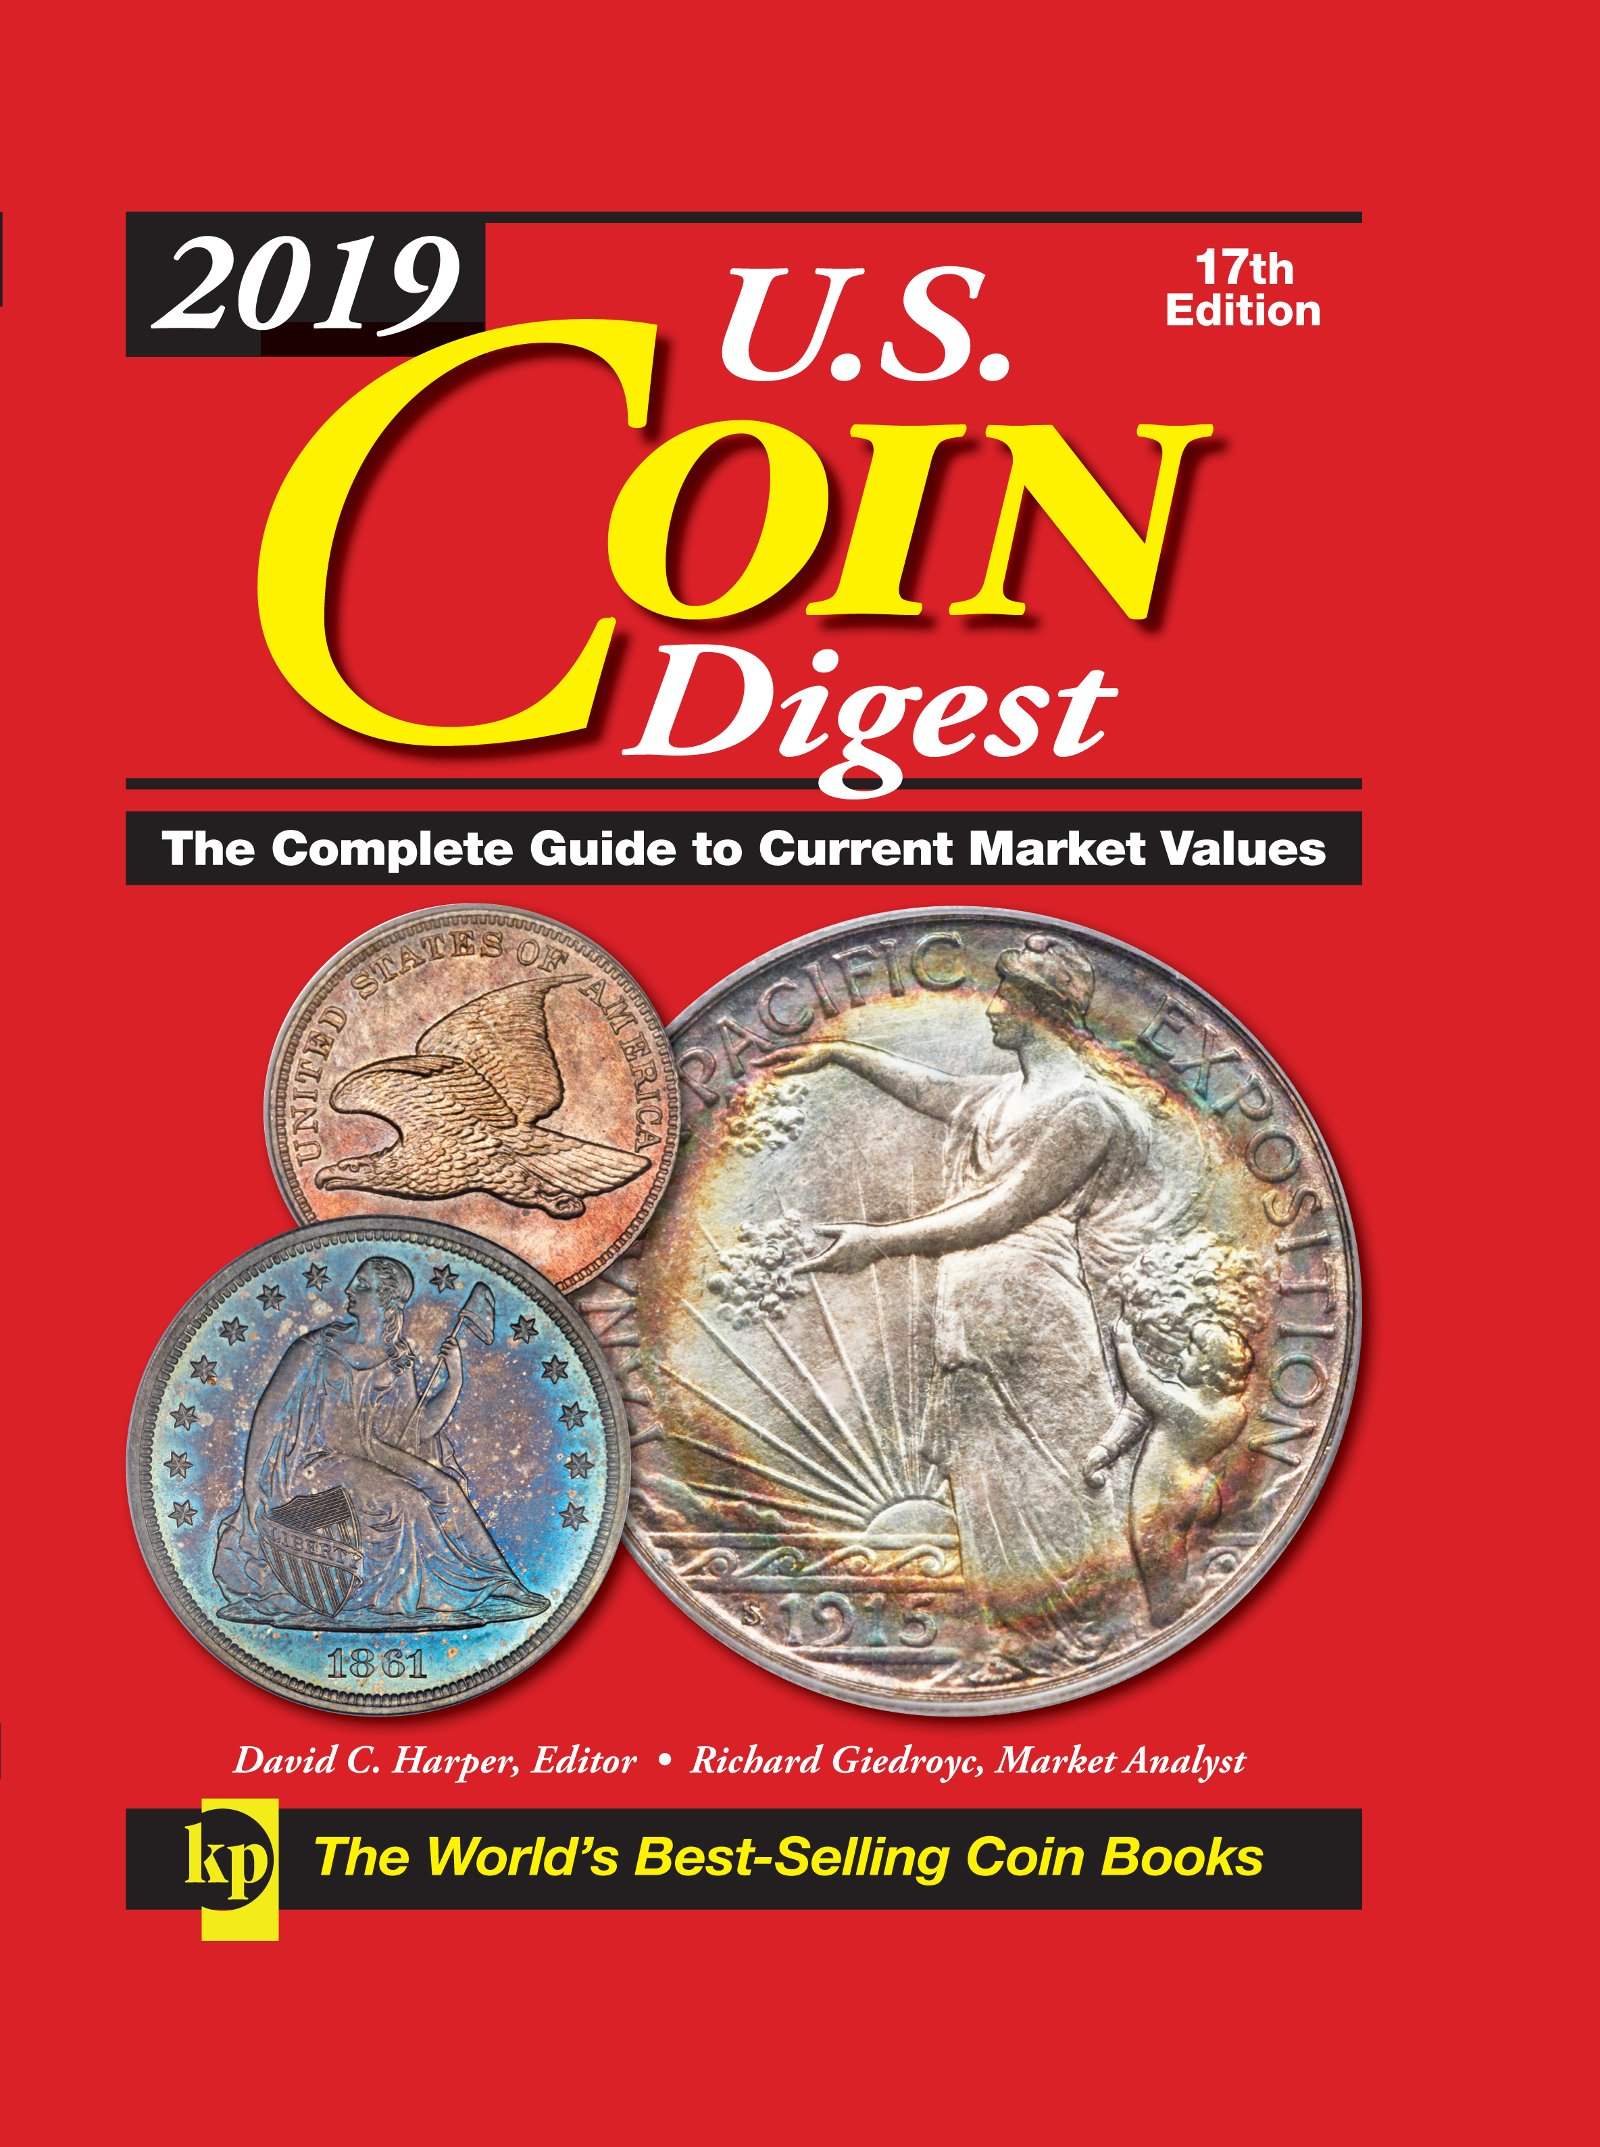 2019 U.S. Coin Digest: The Complete Guide to Current Market Values: David C  Harper, Richard Giedroyc: 9781440248603: Amazon.com: Books